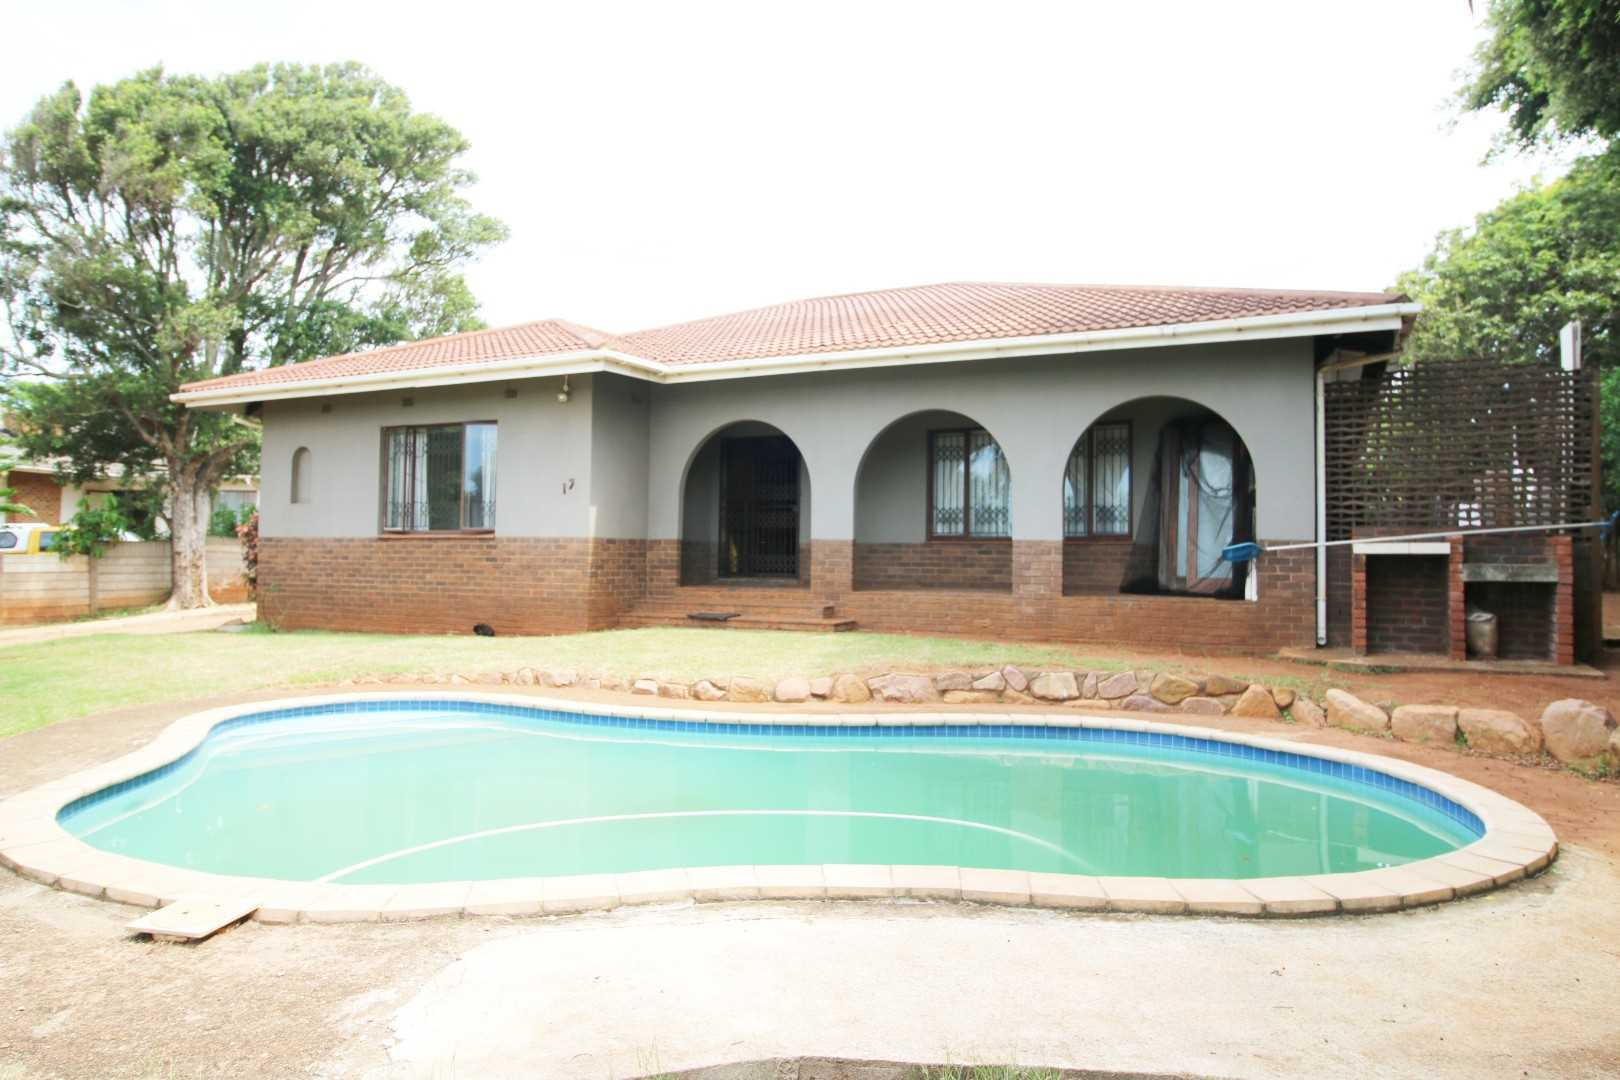 Front view of the house with braai area and pool